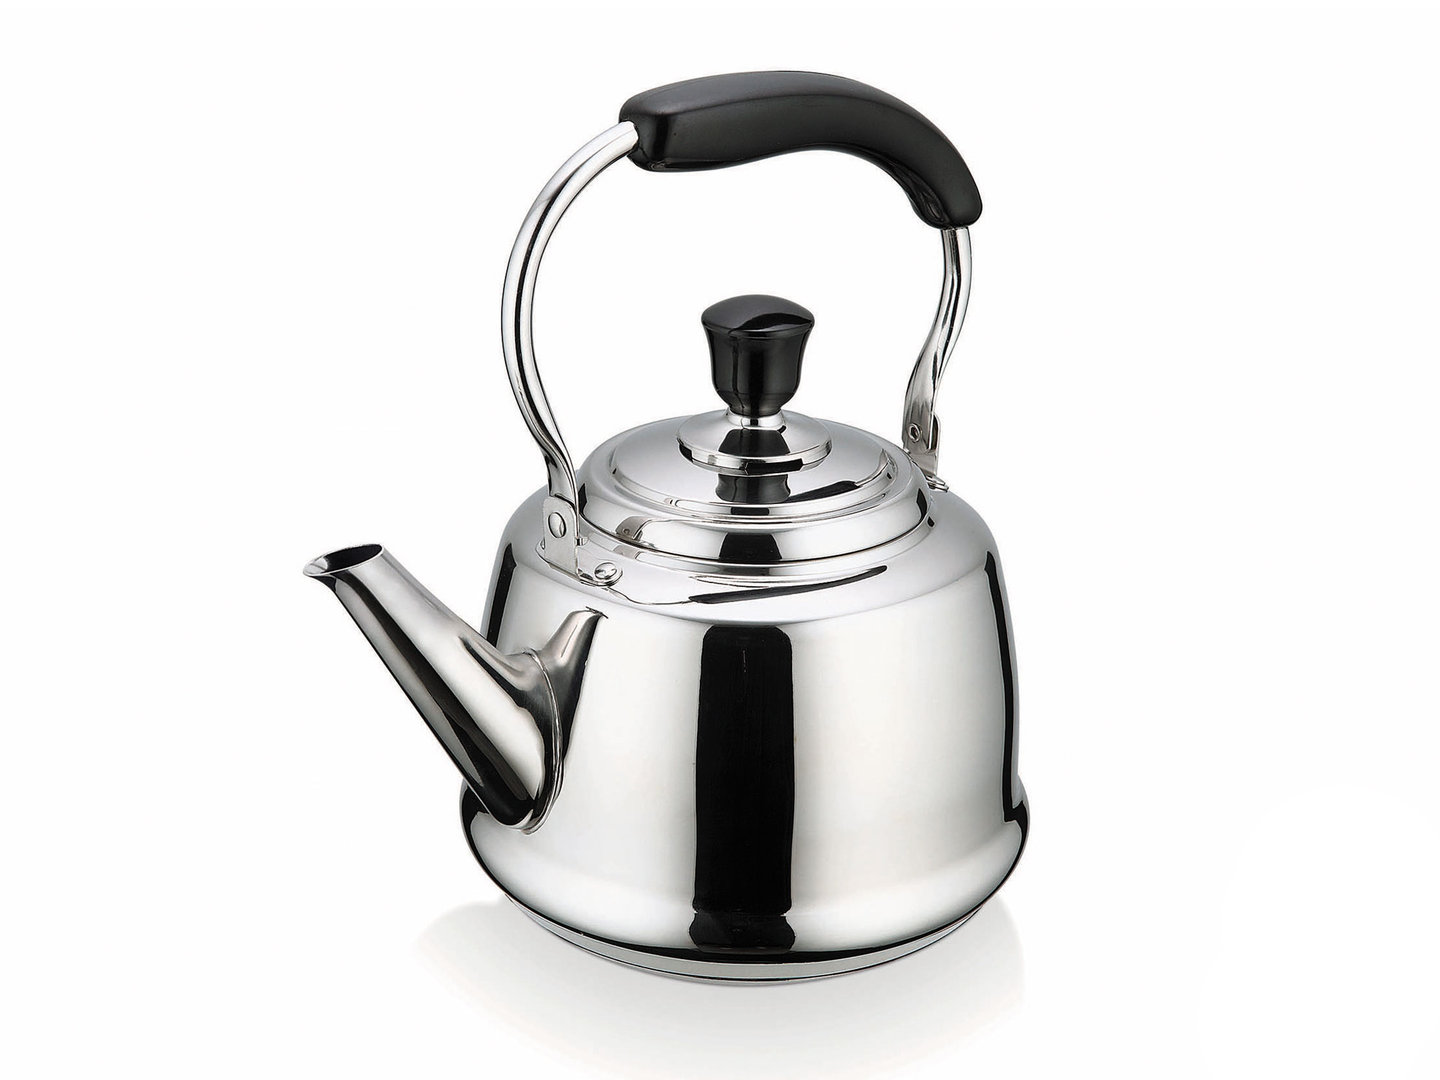 BEKA water kettle CLAUDETTE stainless steel 2,5 liters